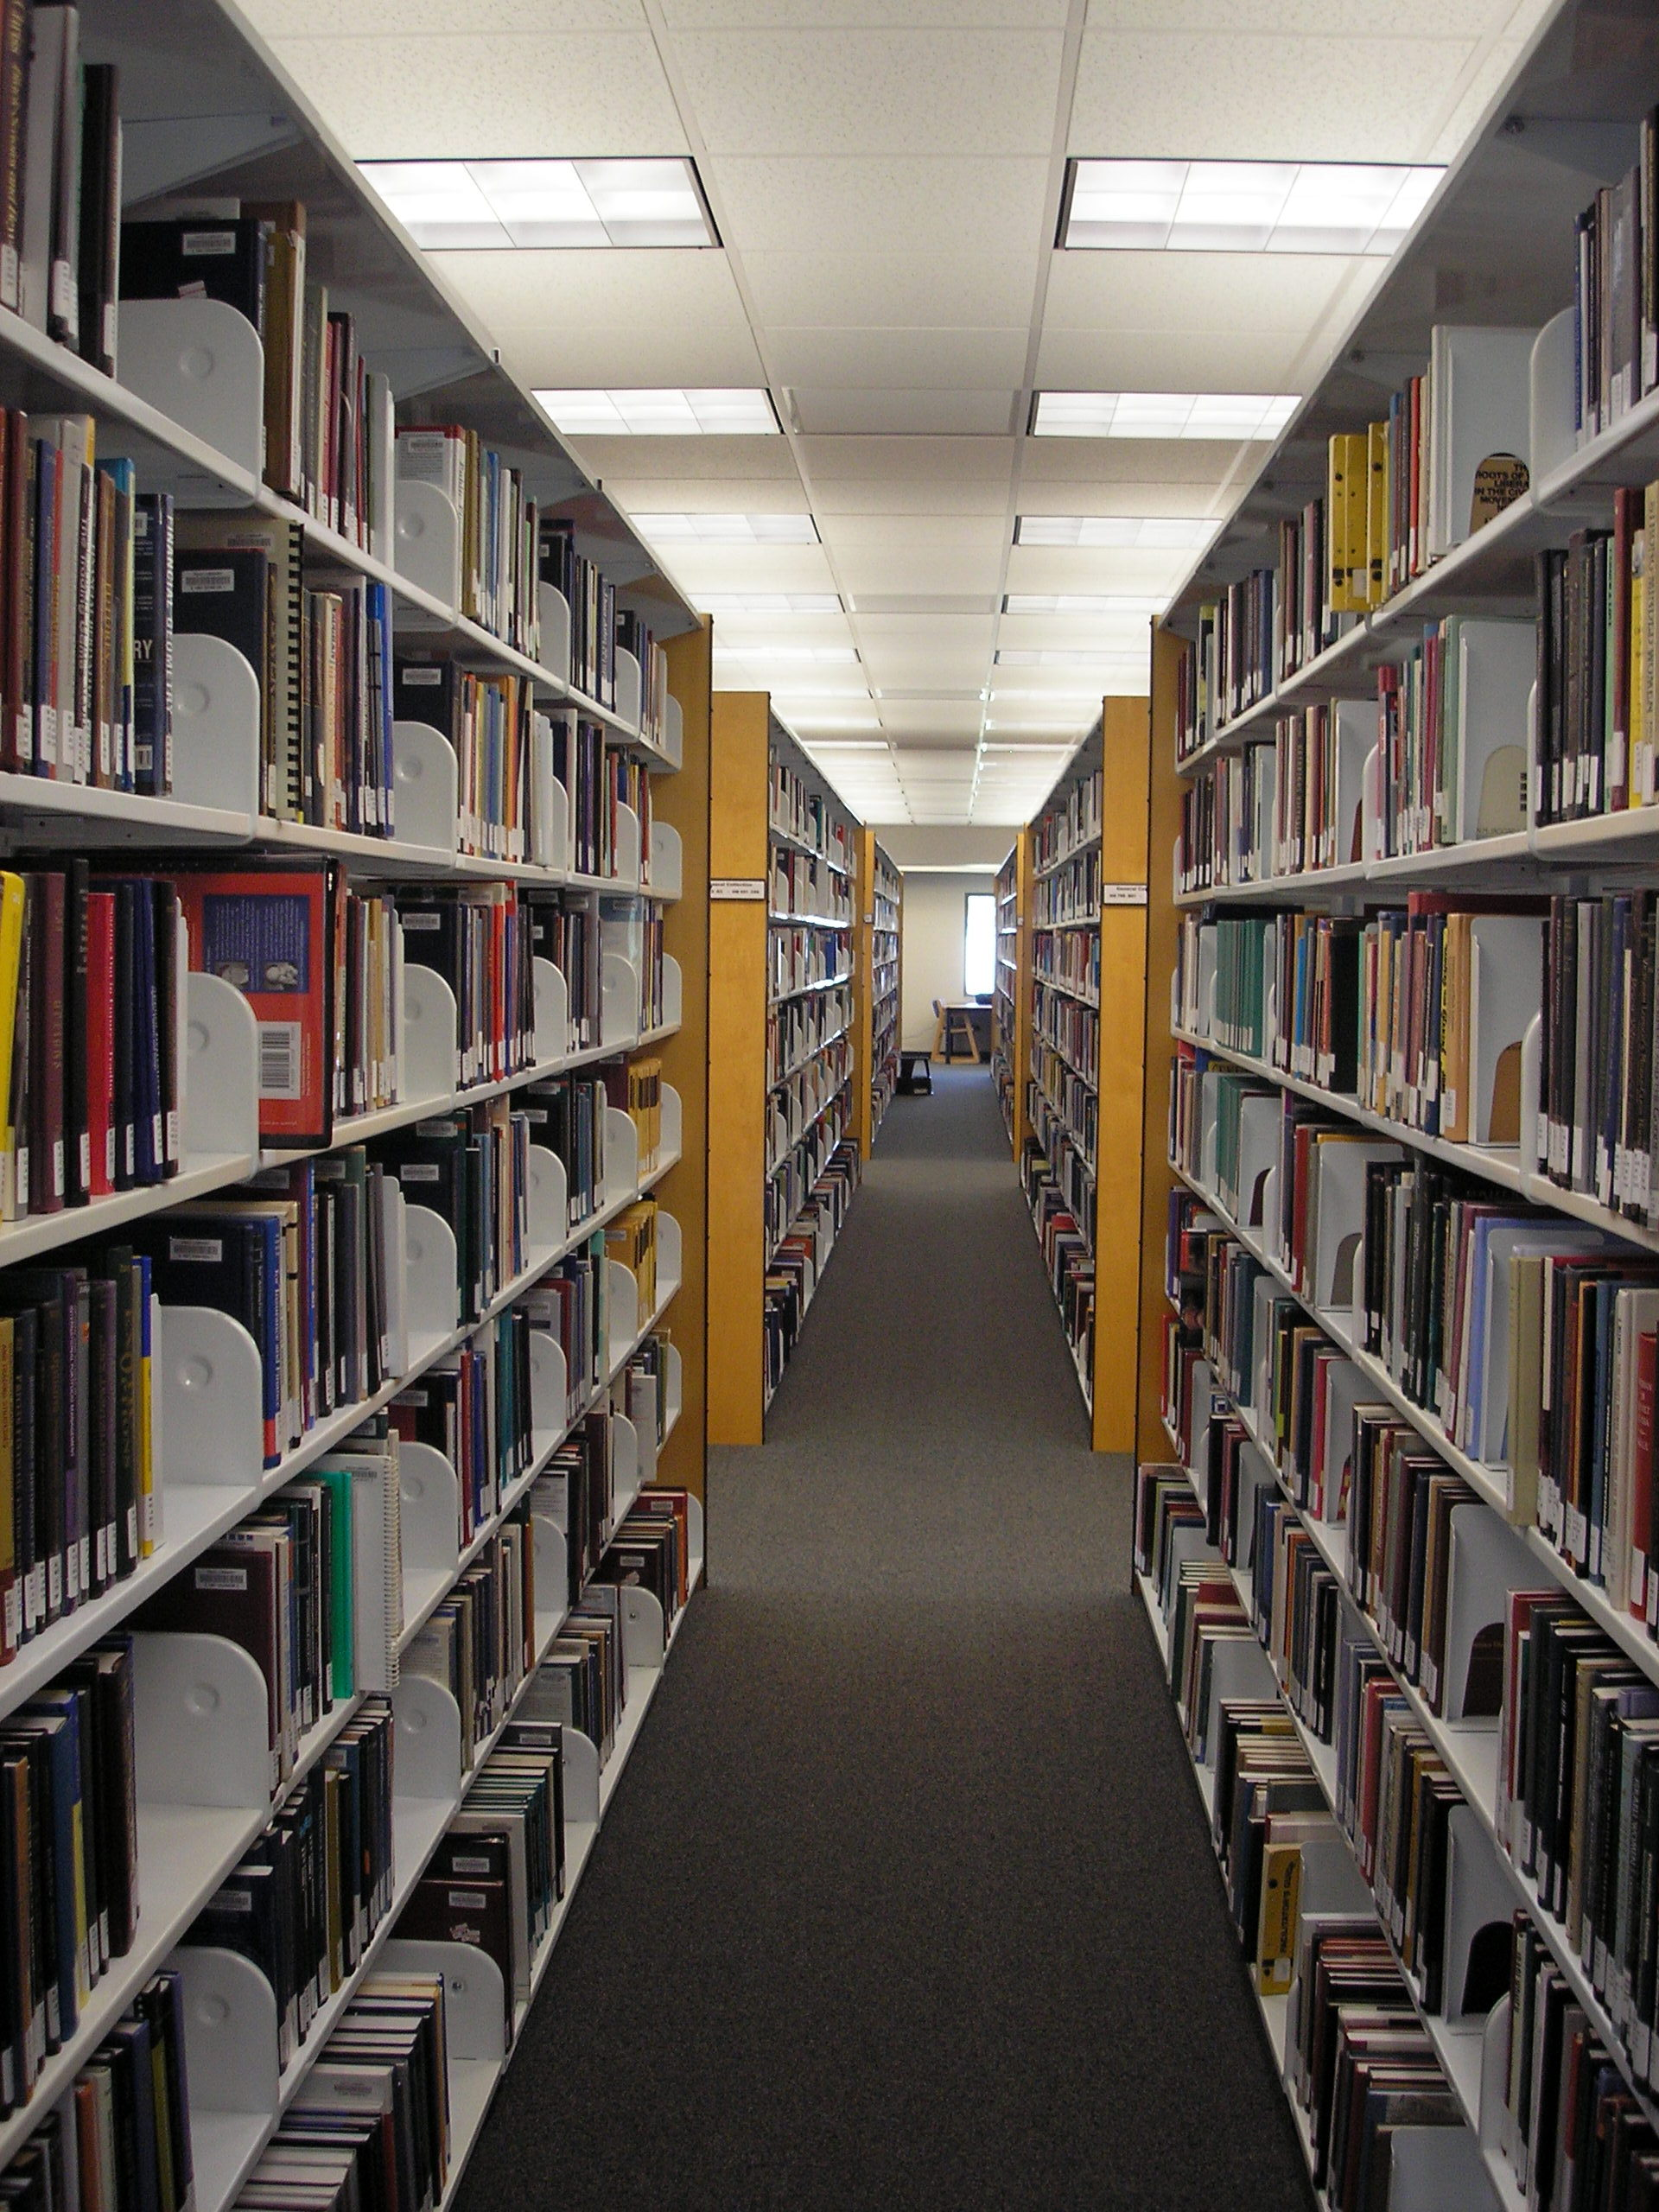 FGCU Library Stacks